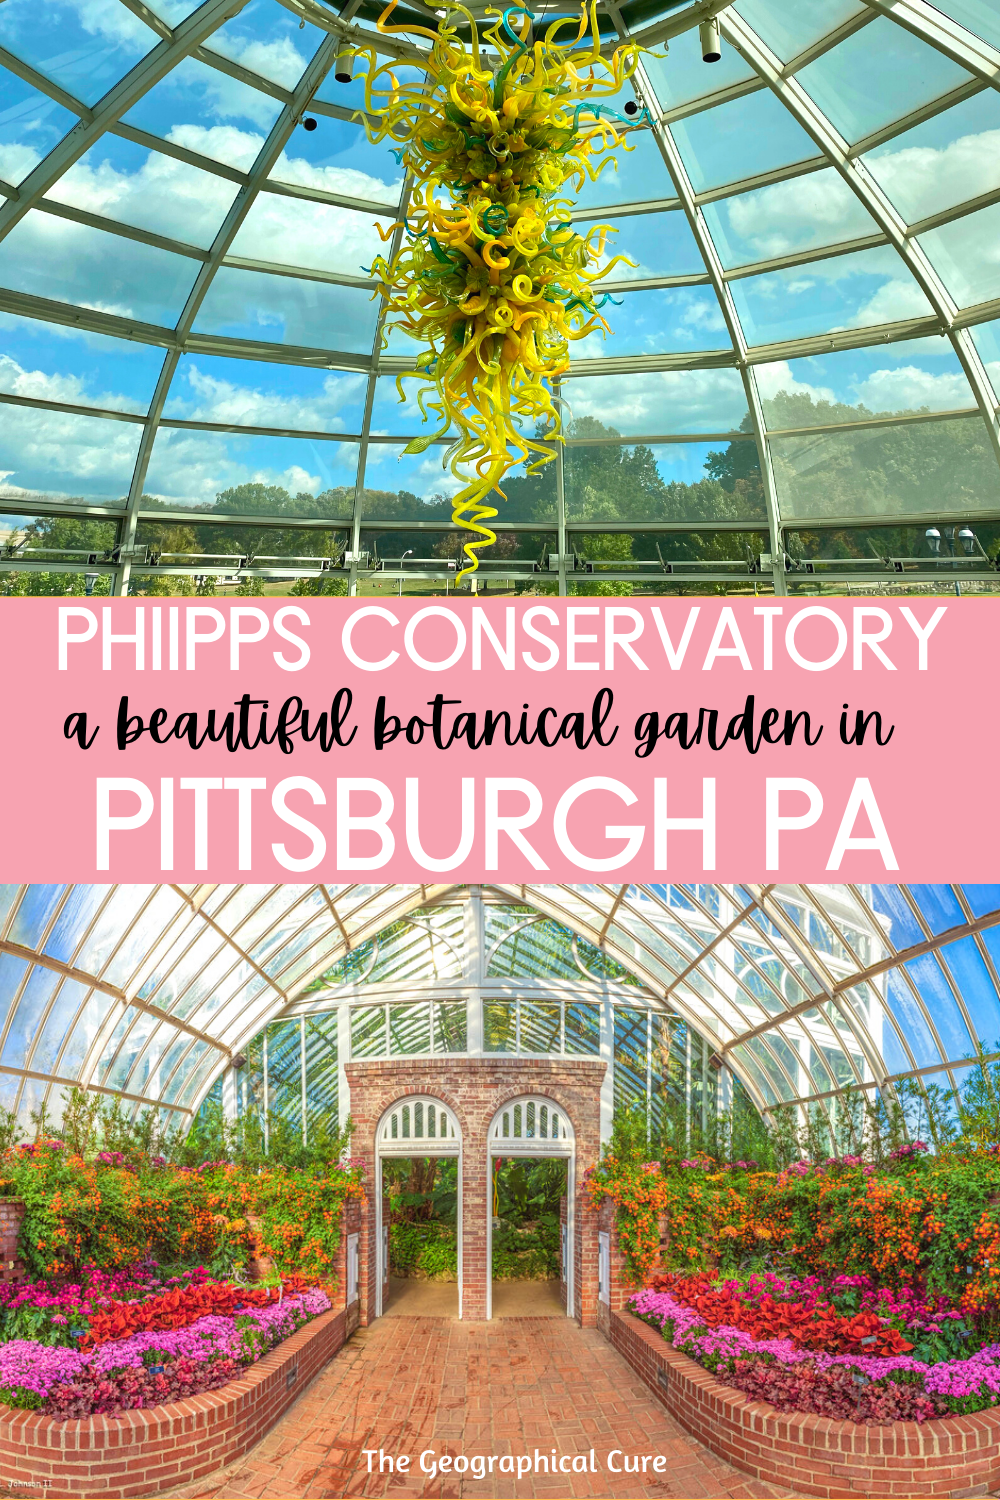 44ce59793a199572bec720811fa17222 - Phipps Conservatory And Botanical Gardens Parking